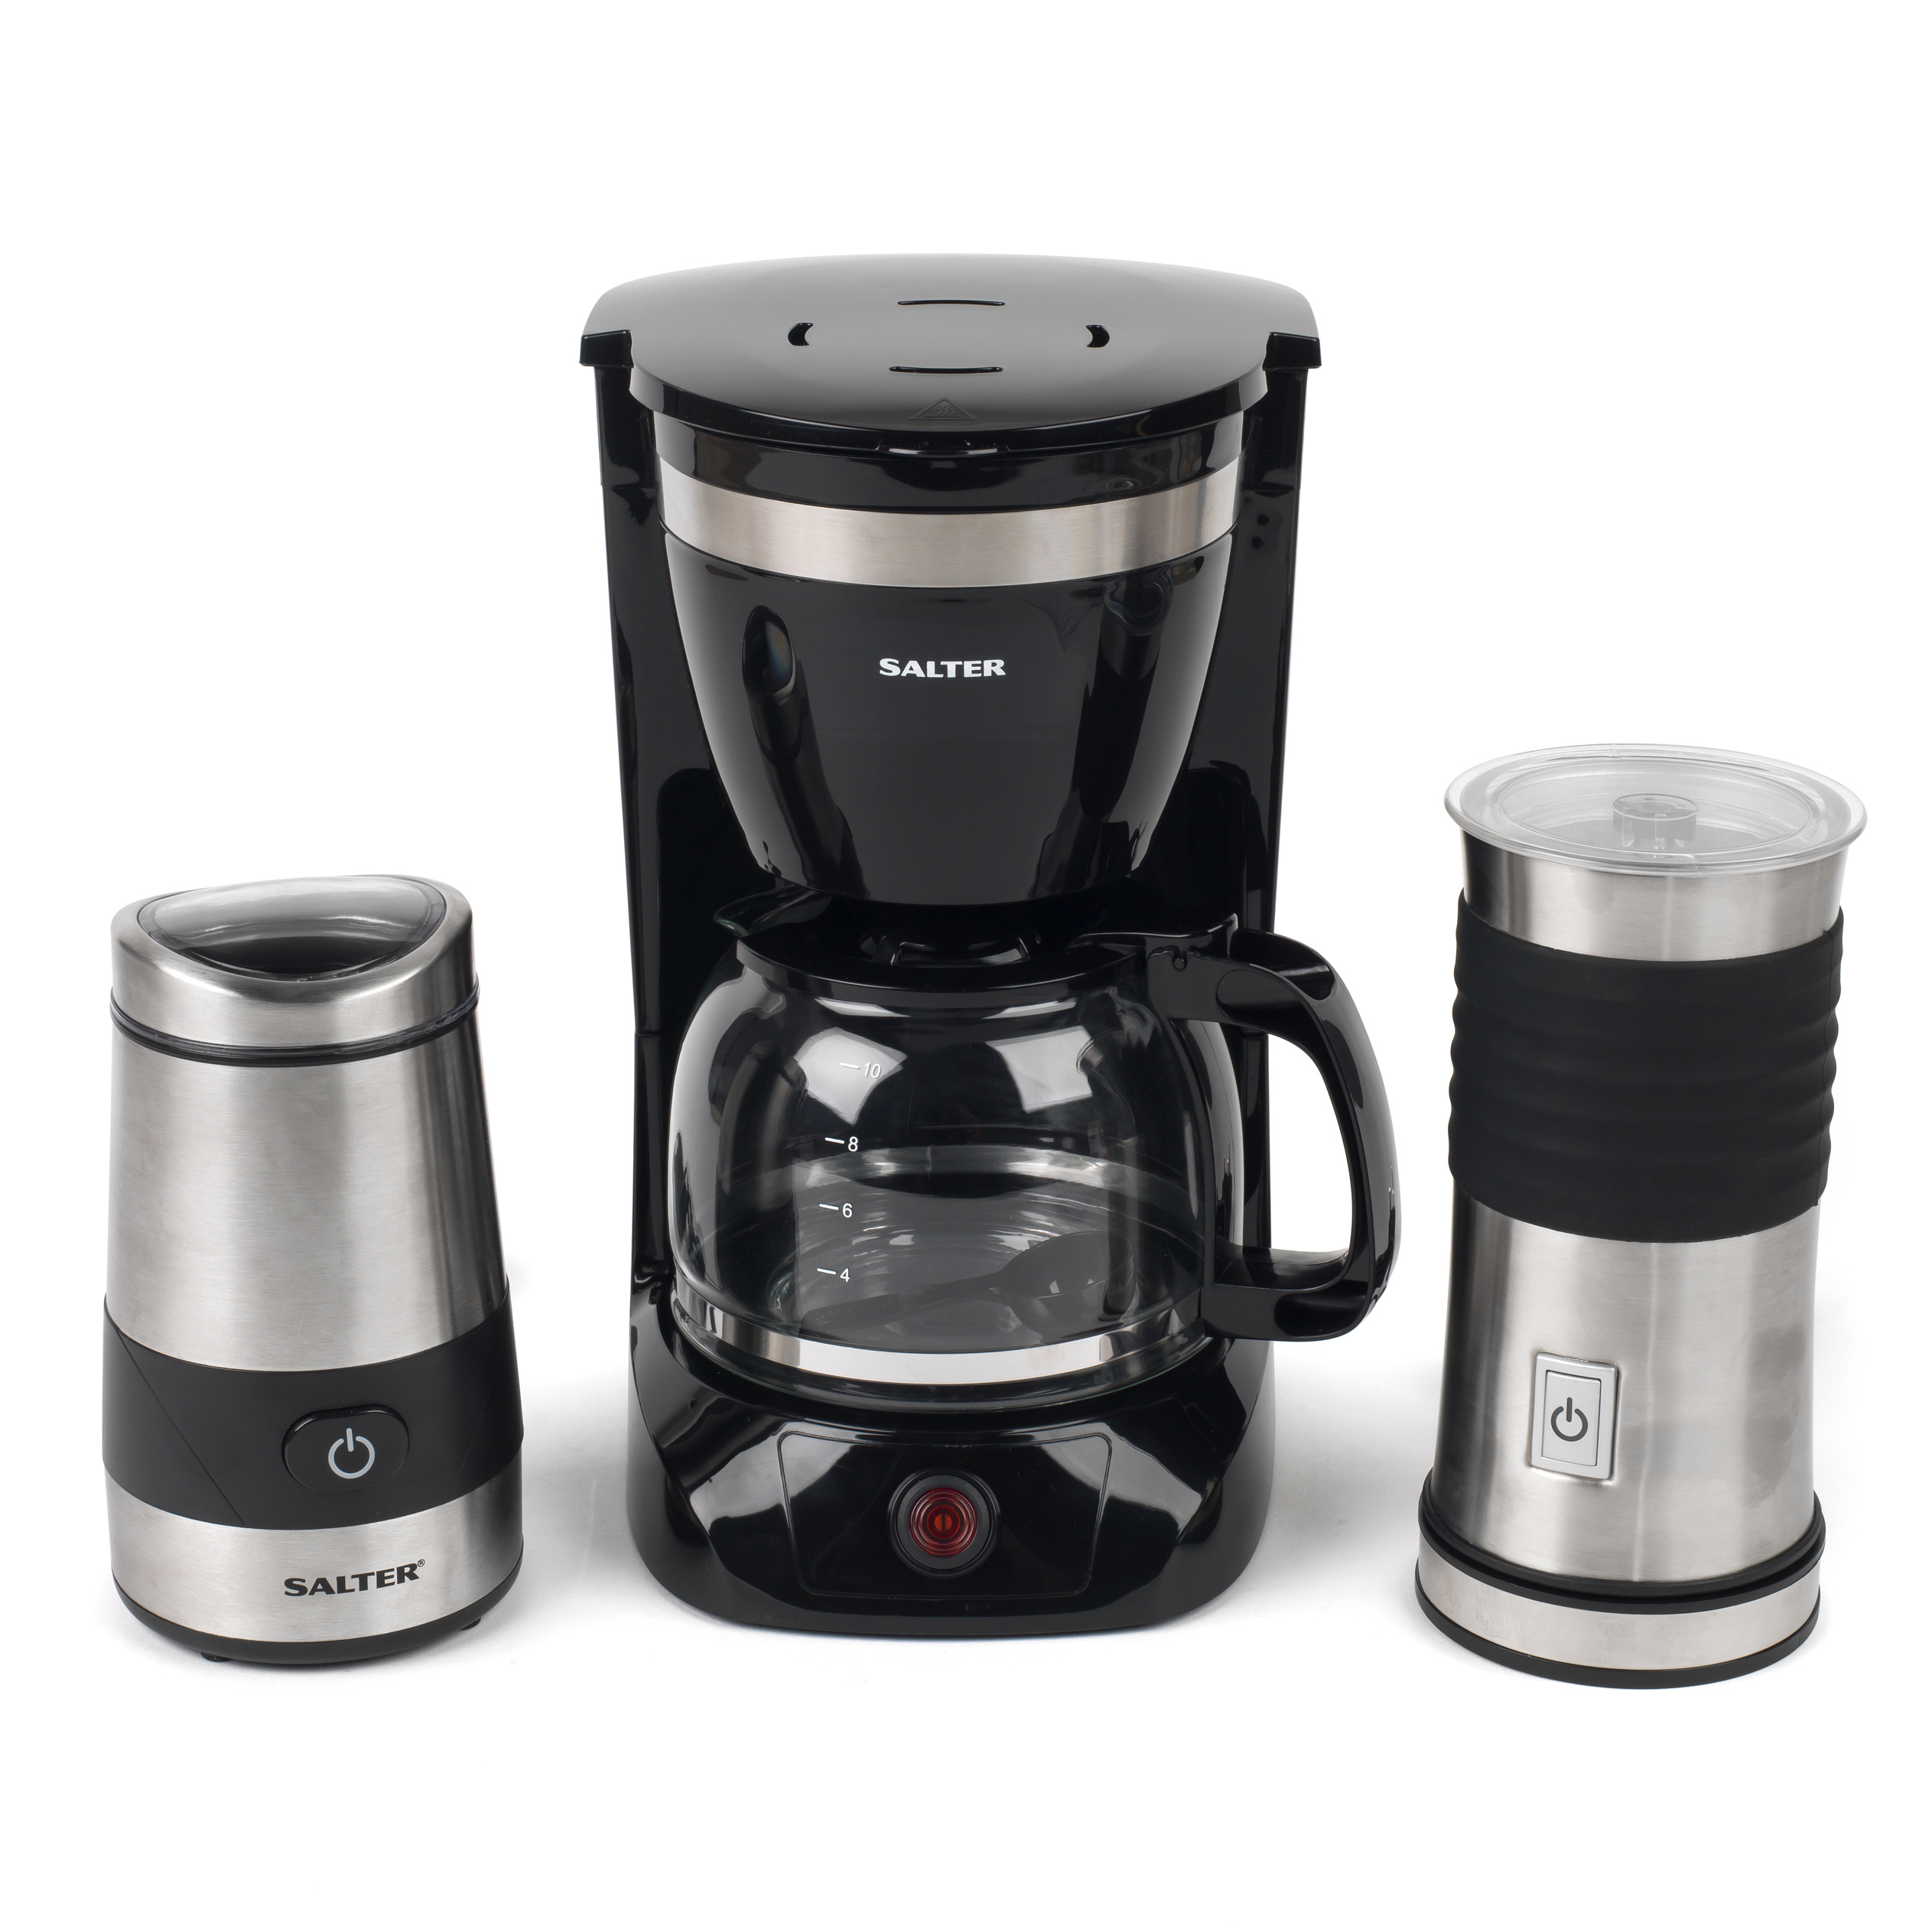 /Salter COMBO-4073 Coffee Maker with Keep Warm Function ...